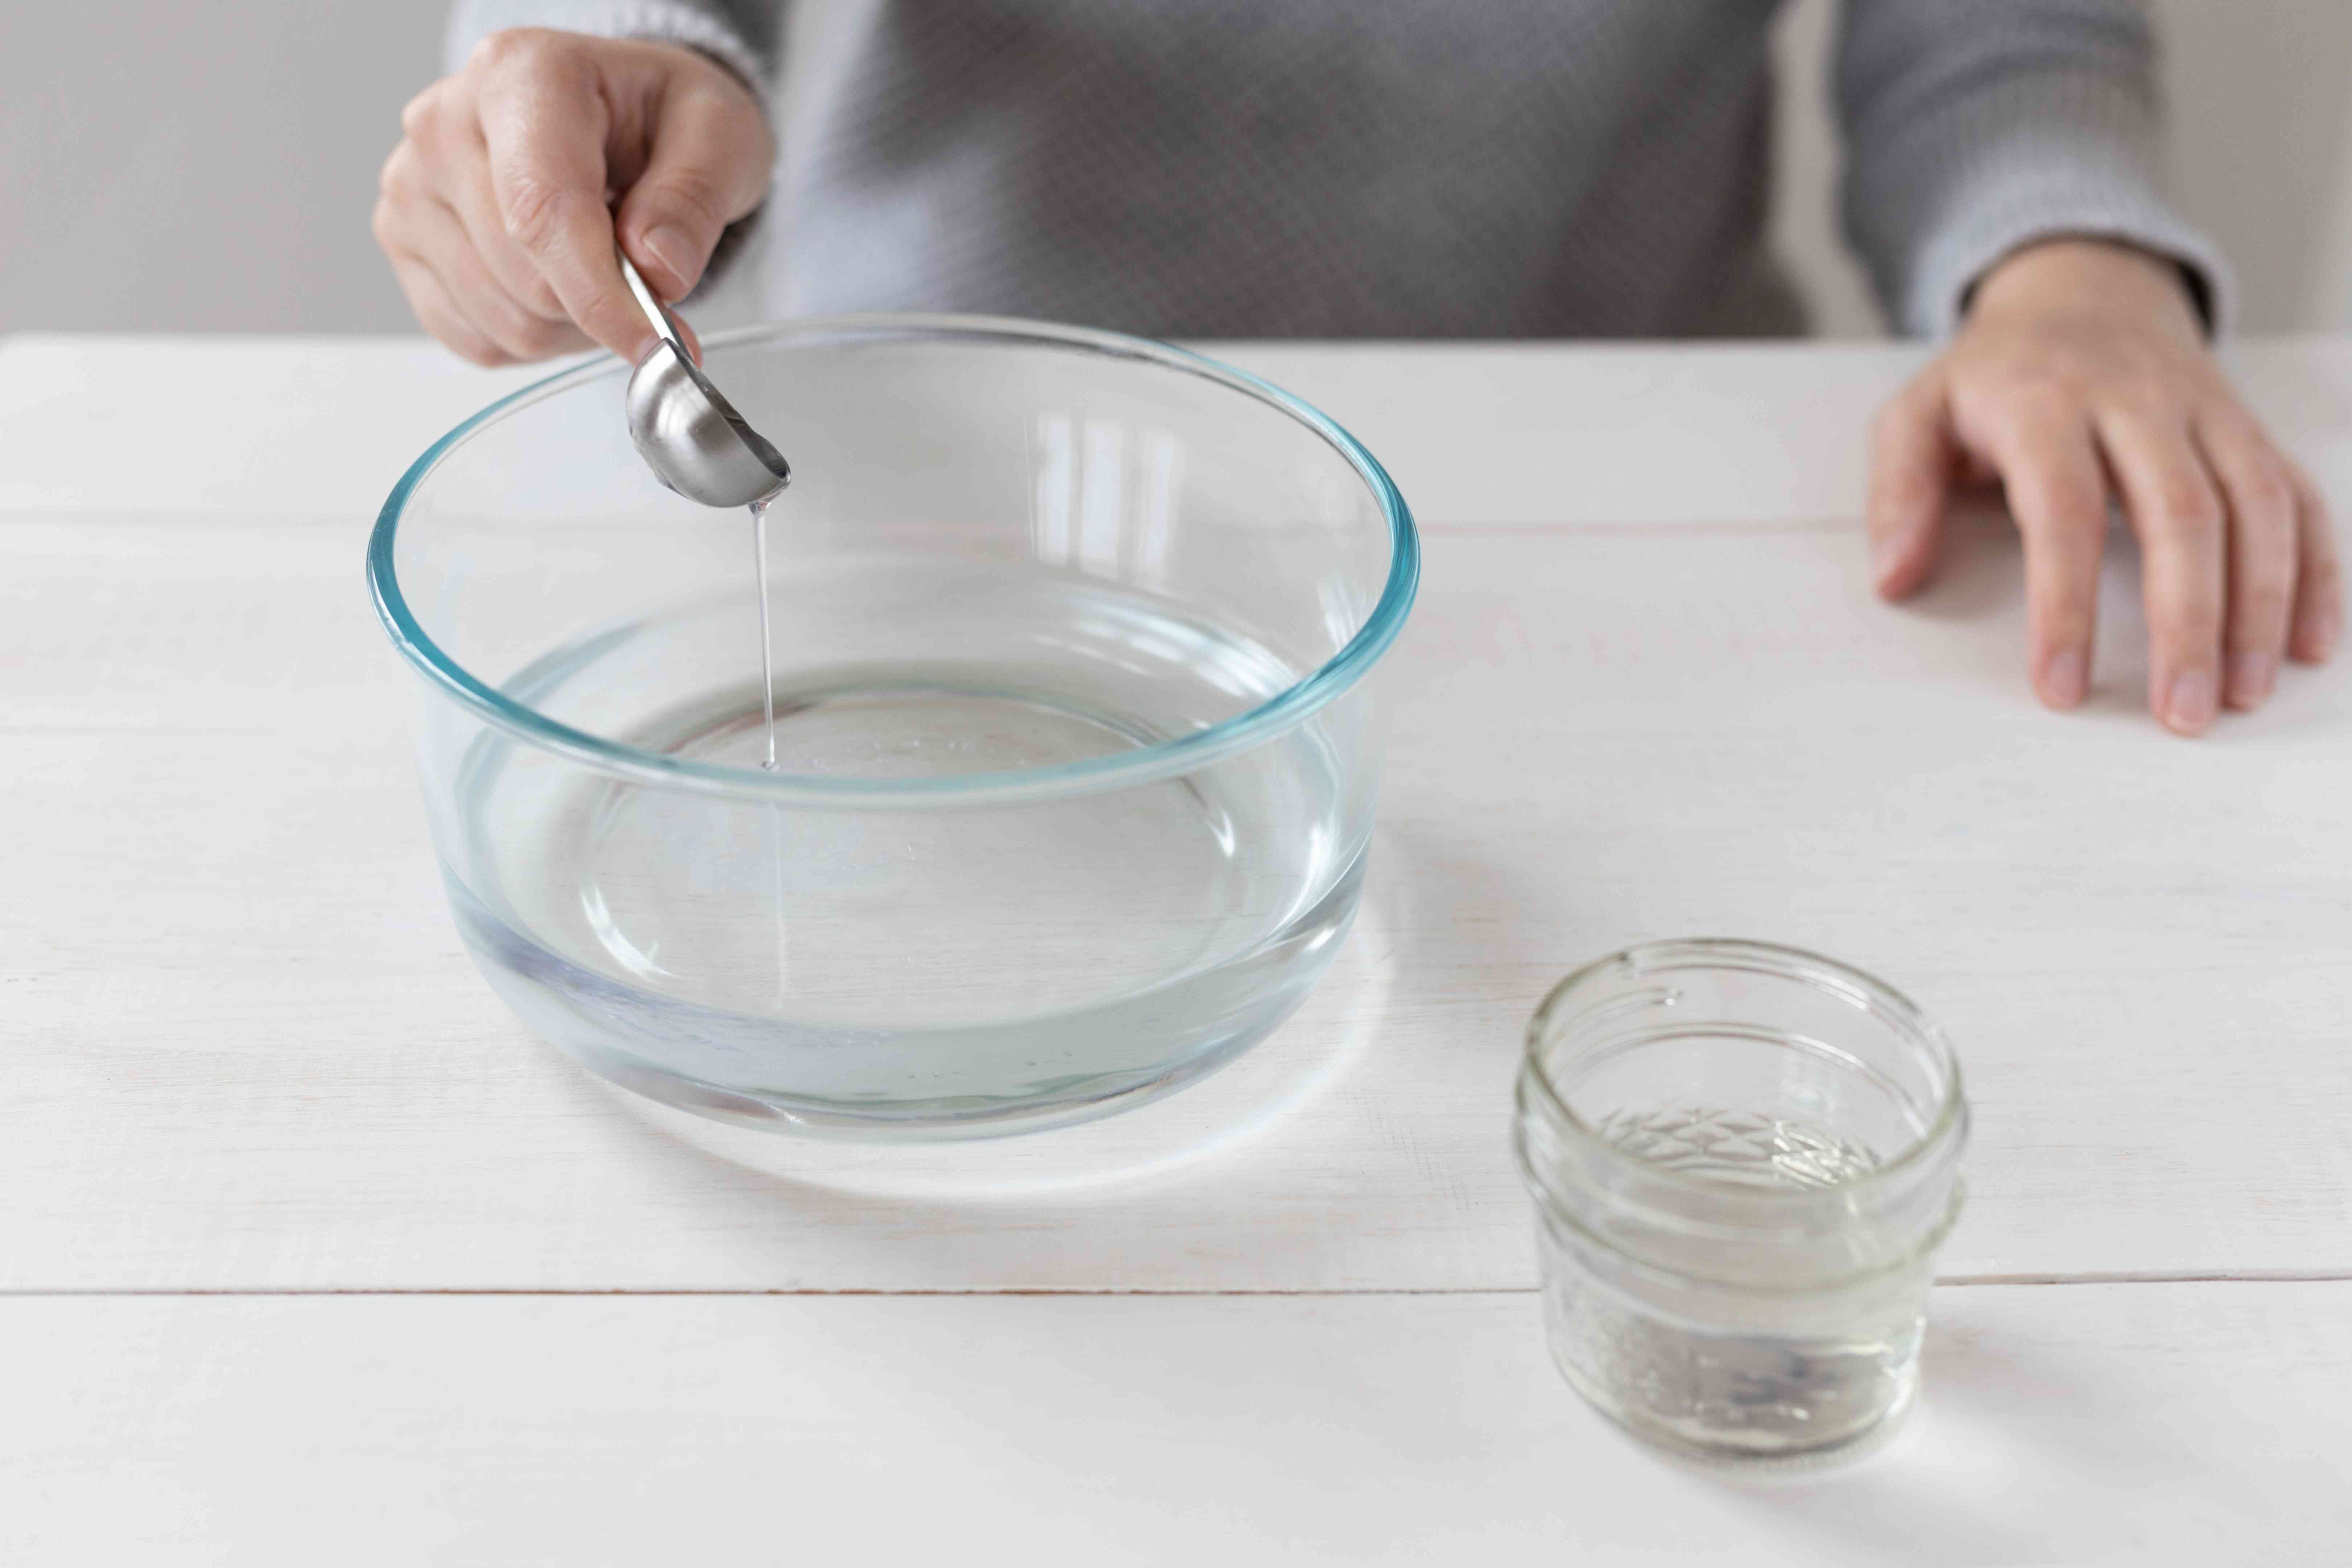 Dishwashing liquid added to glass bowl of water for cleaning mixture